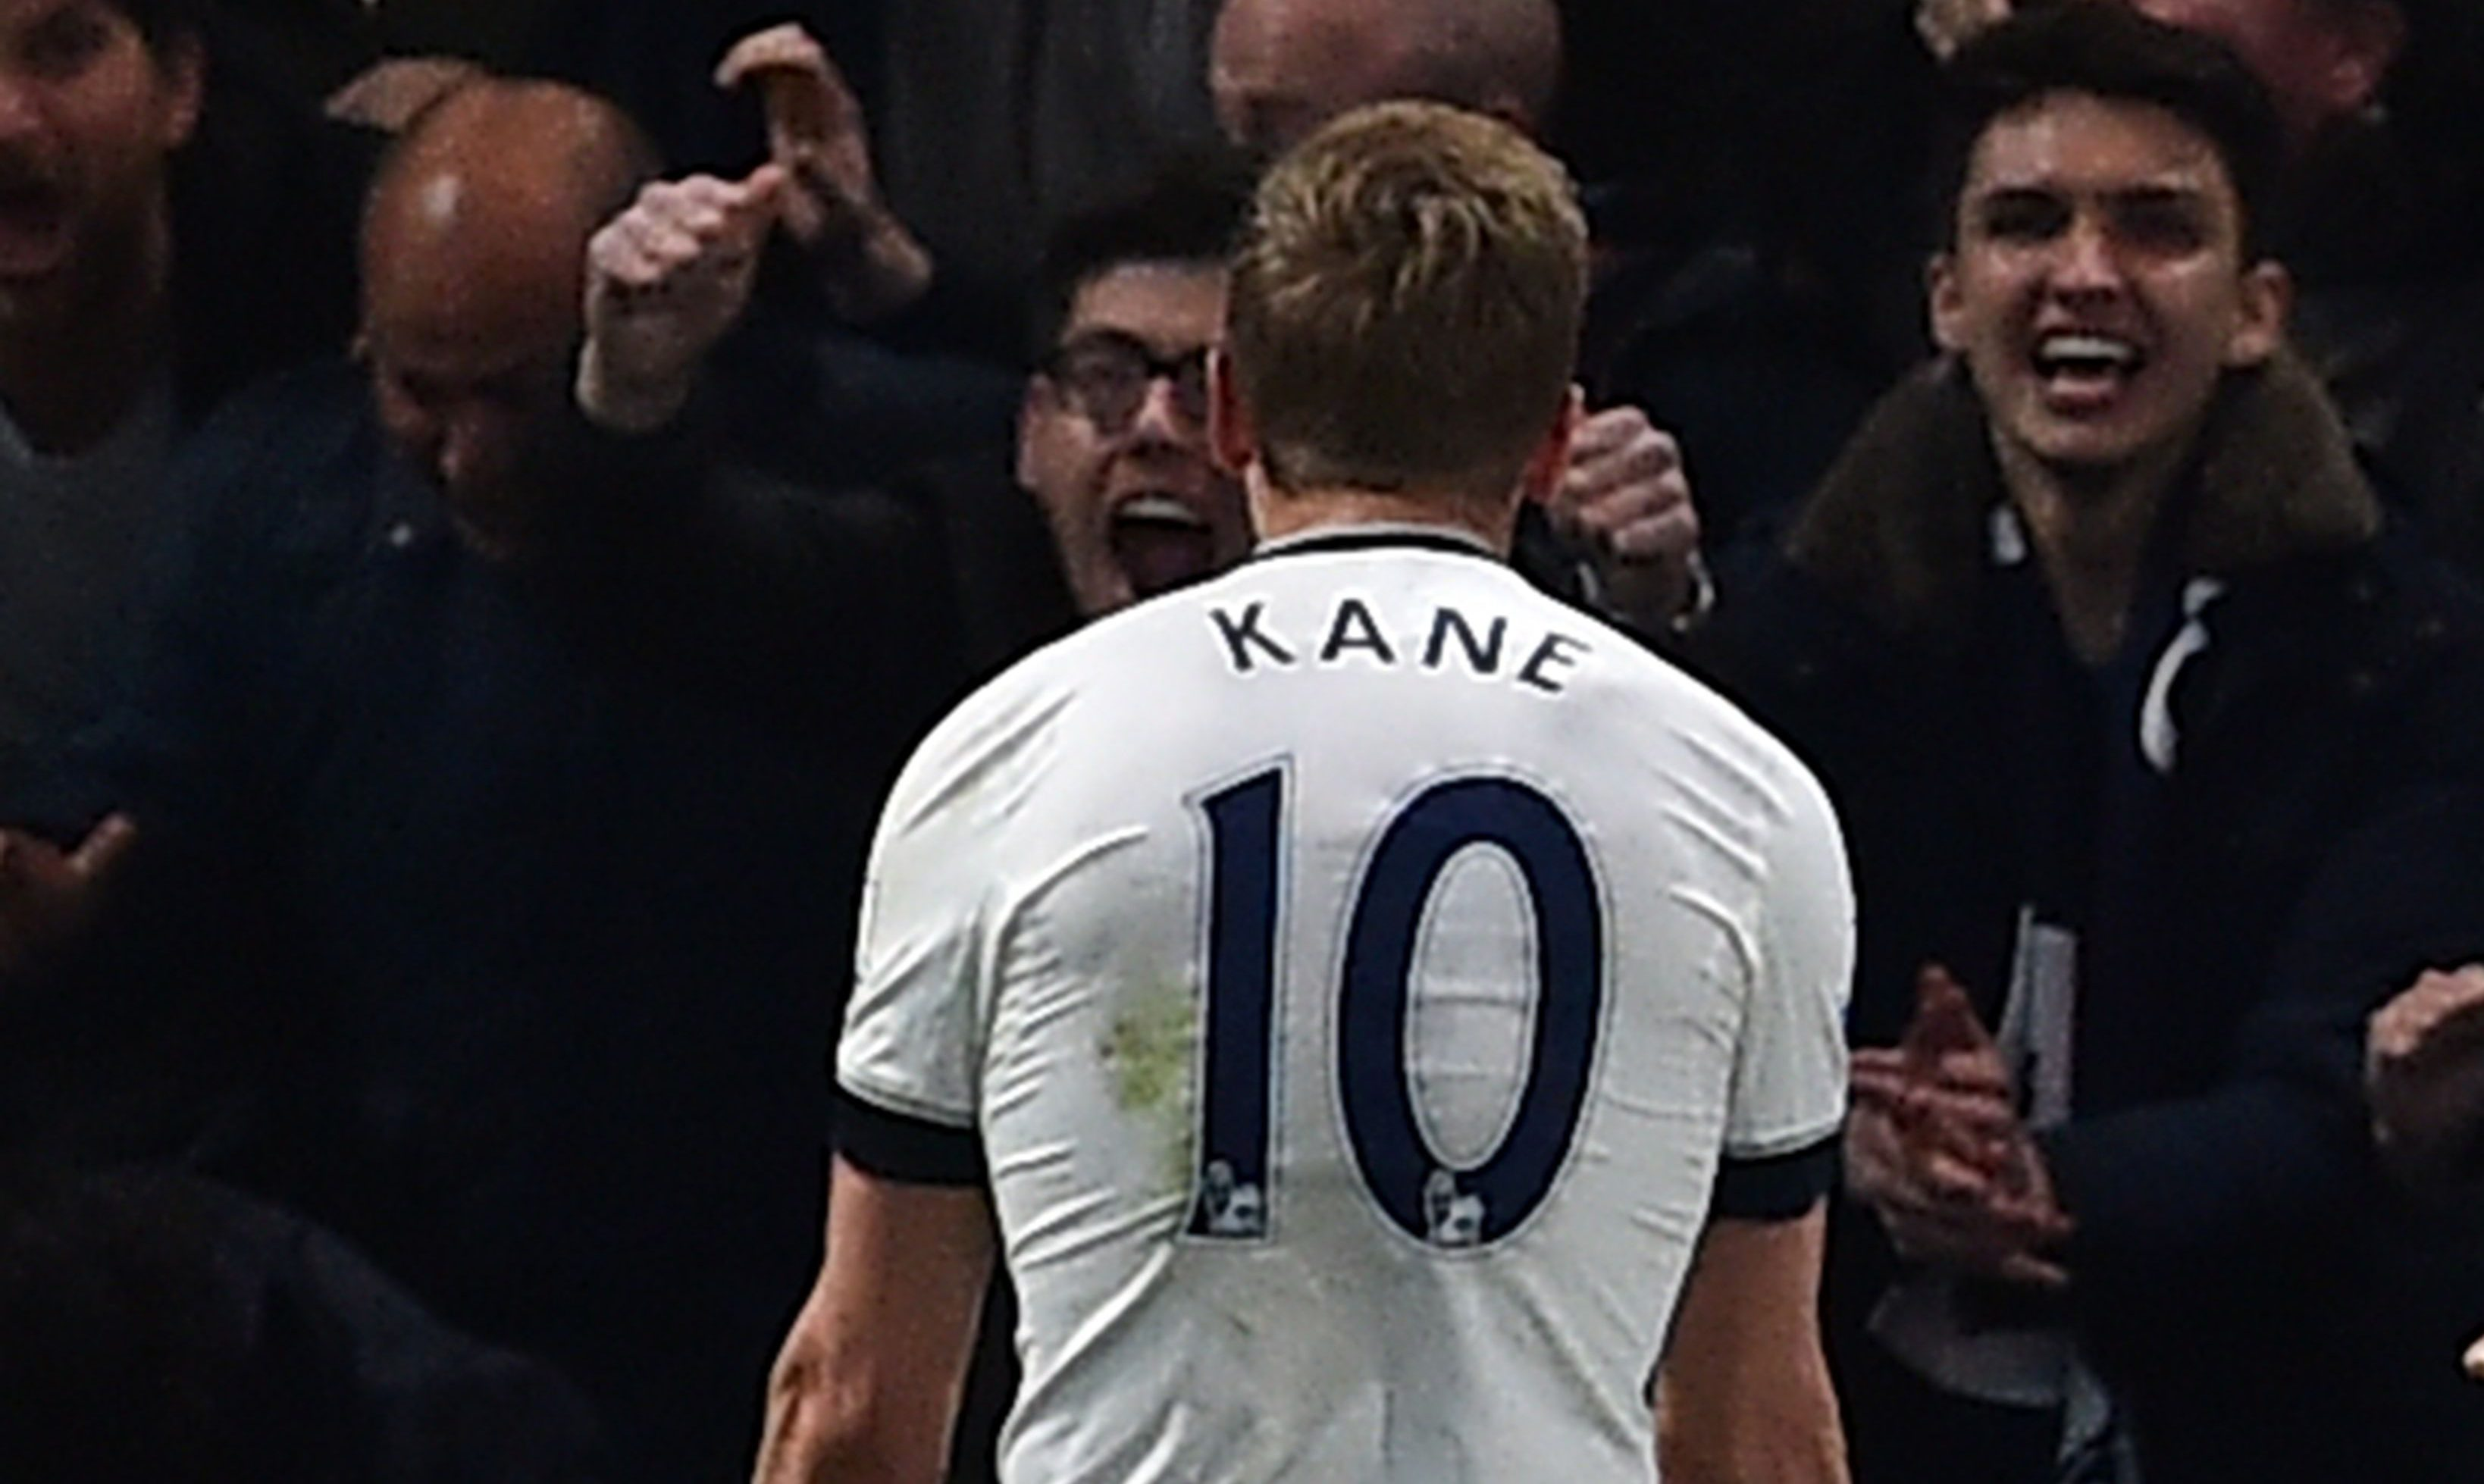 Tottenham Hotspur's English striker Harry Kane celebrates in front of the away fans after scoring the opening goal during the English Premier League football match between Chelsea and Tottenham Hotspur at Stamford Bridge in London on May 2, 2016. / AFP / BEN STANSALL / RESTRICTED TO EDITORIAL USE. No use with unauthorized audio, video, data, fixture lists, club/league logos or 'live' services. Online in-match use limited to 75 images, no video emulation. No use in betting, games or single club/league/player publications. / (Photo credit should read BEN STANSALL/AFP/Getty Images)